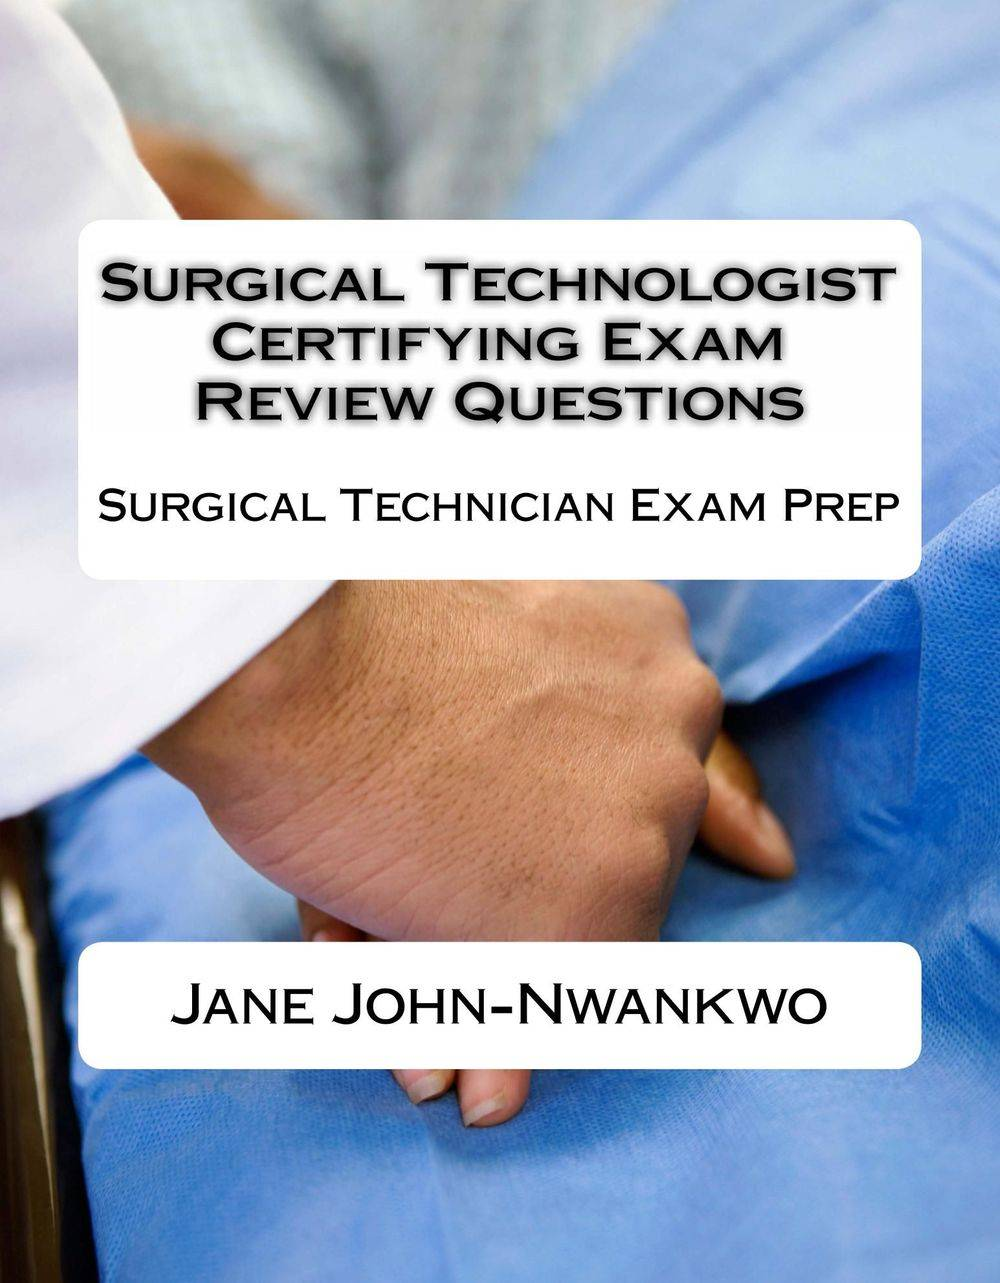 surgical technician exam prep